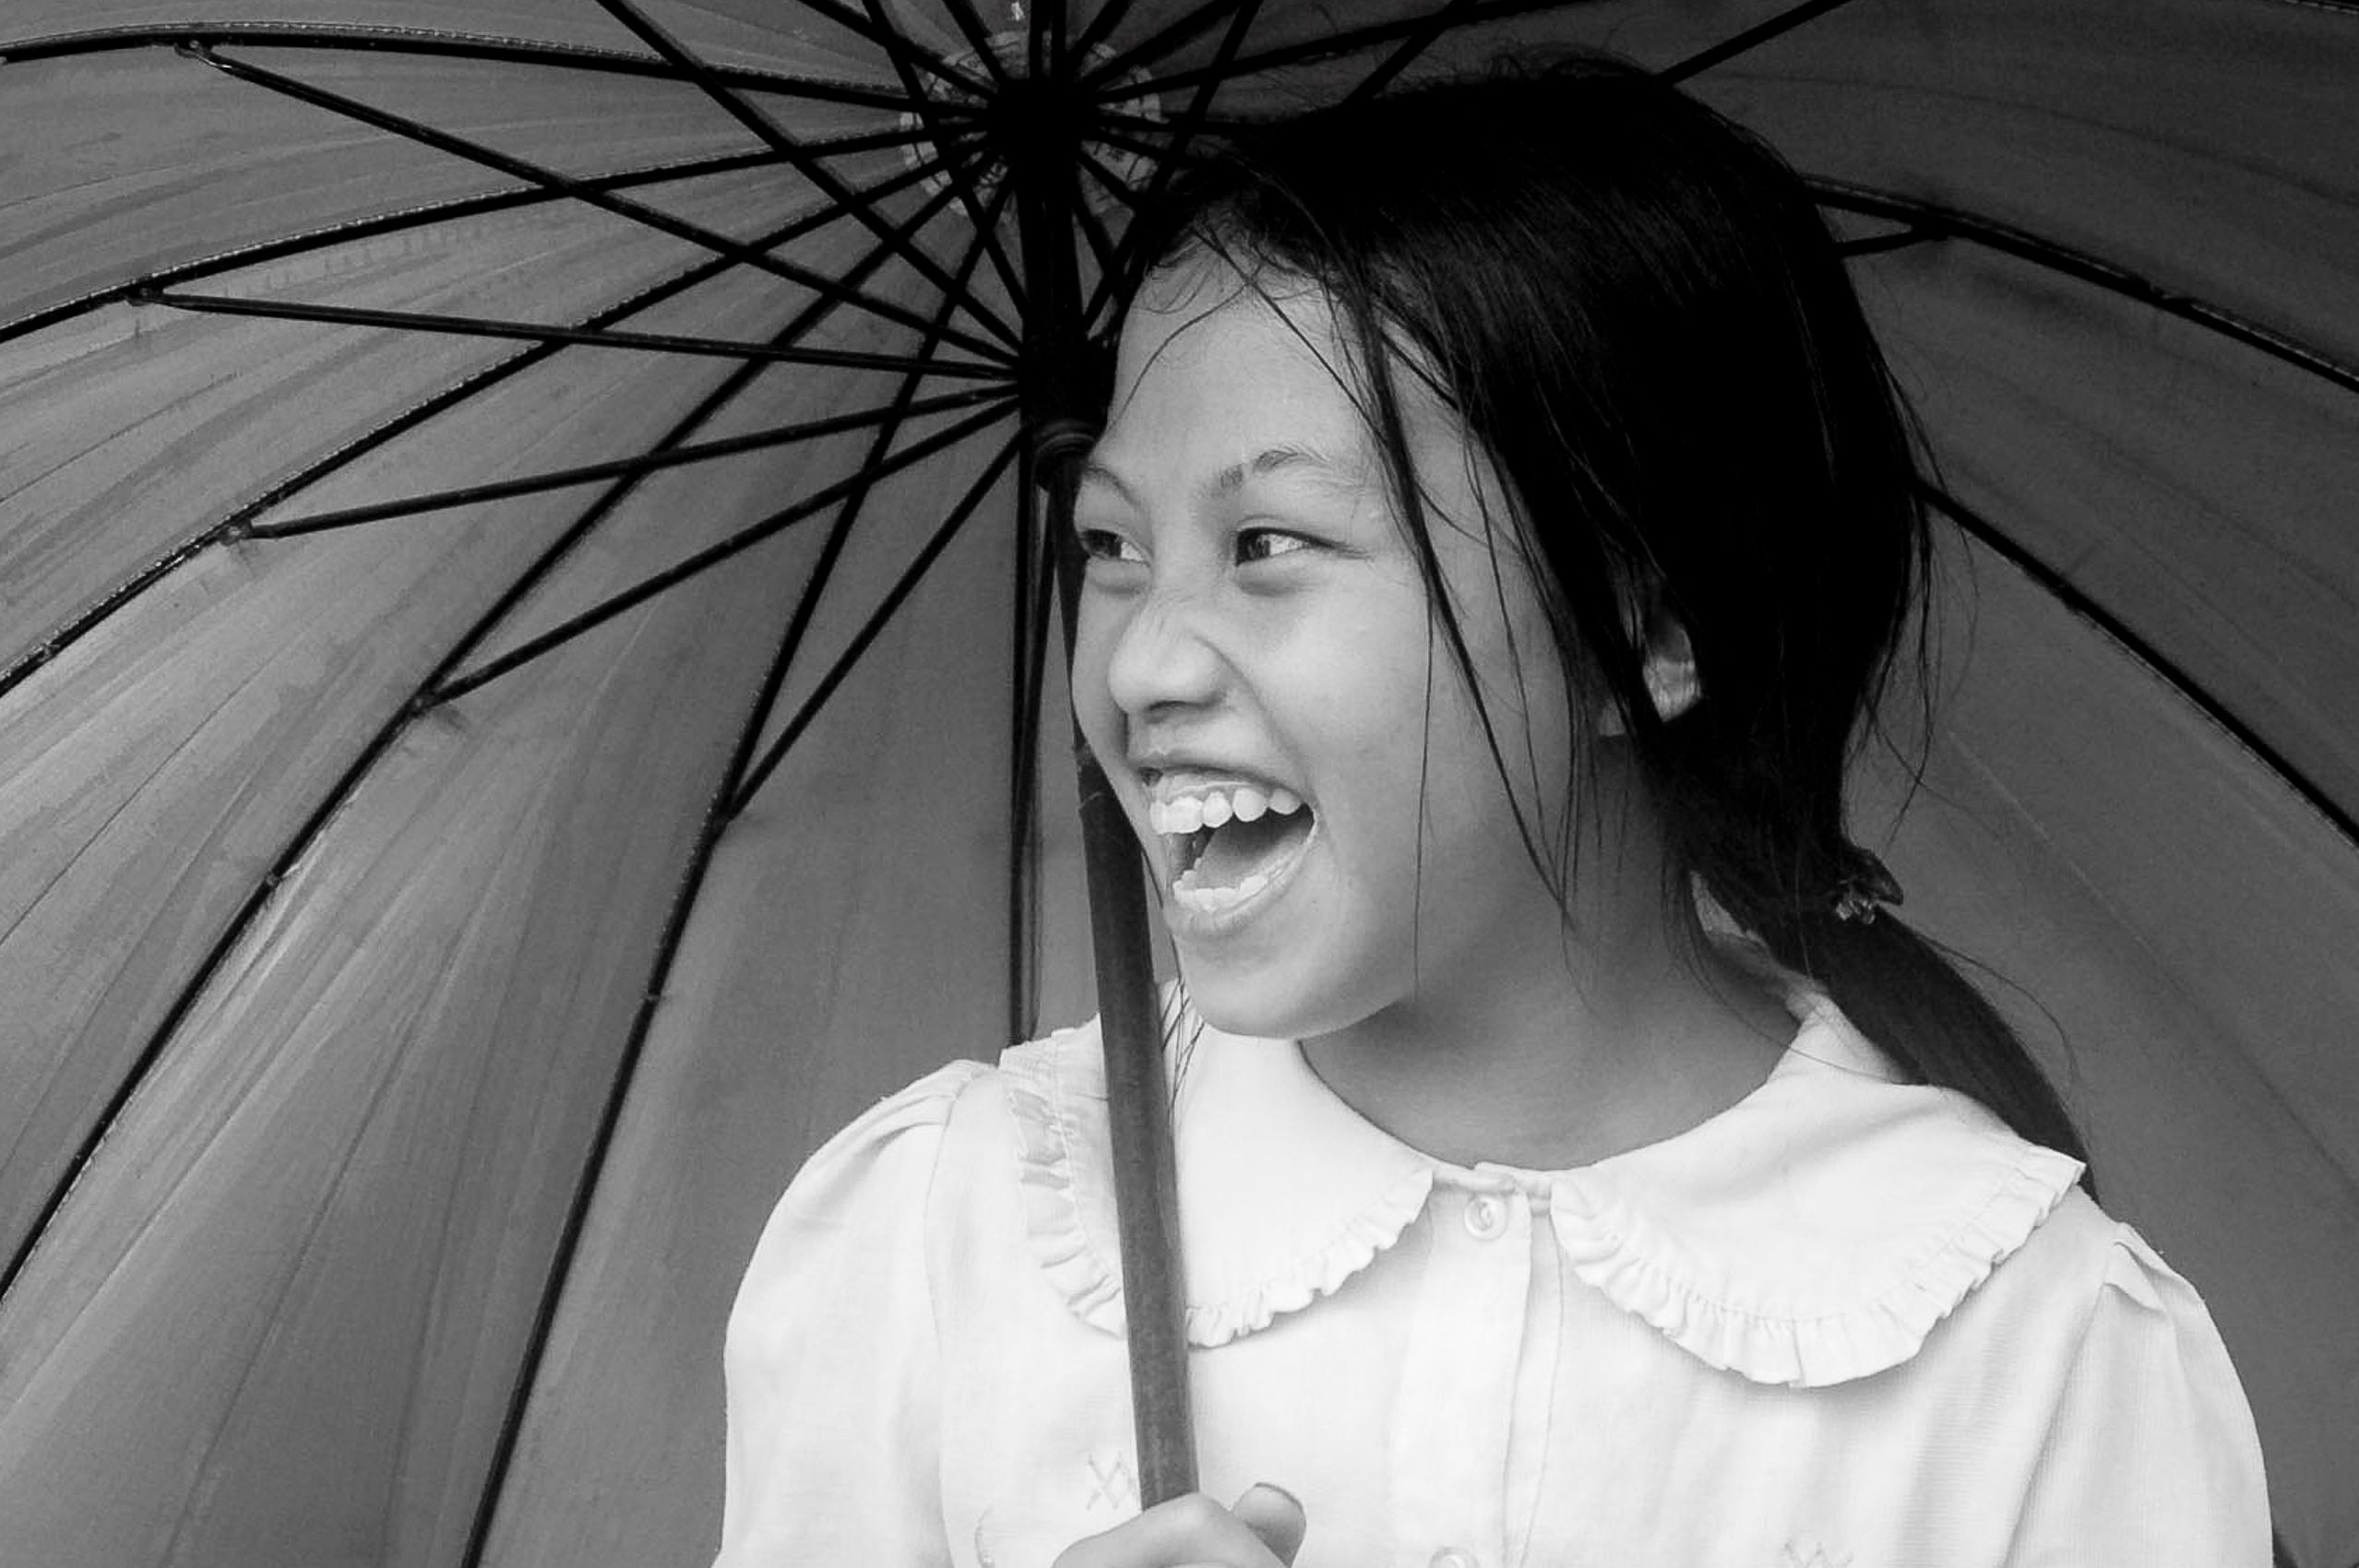 vietnam_hagiang_girl_umbrella_portrait.jpg